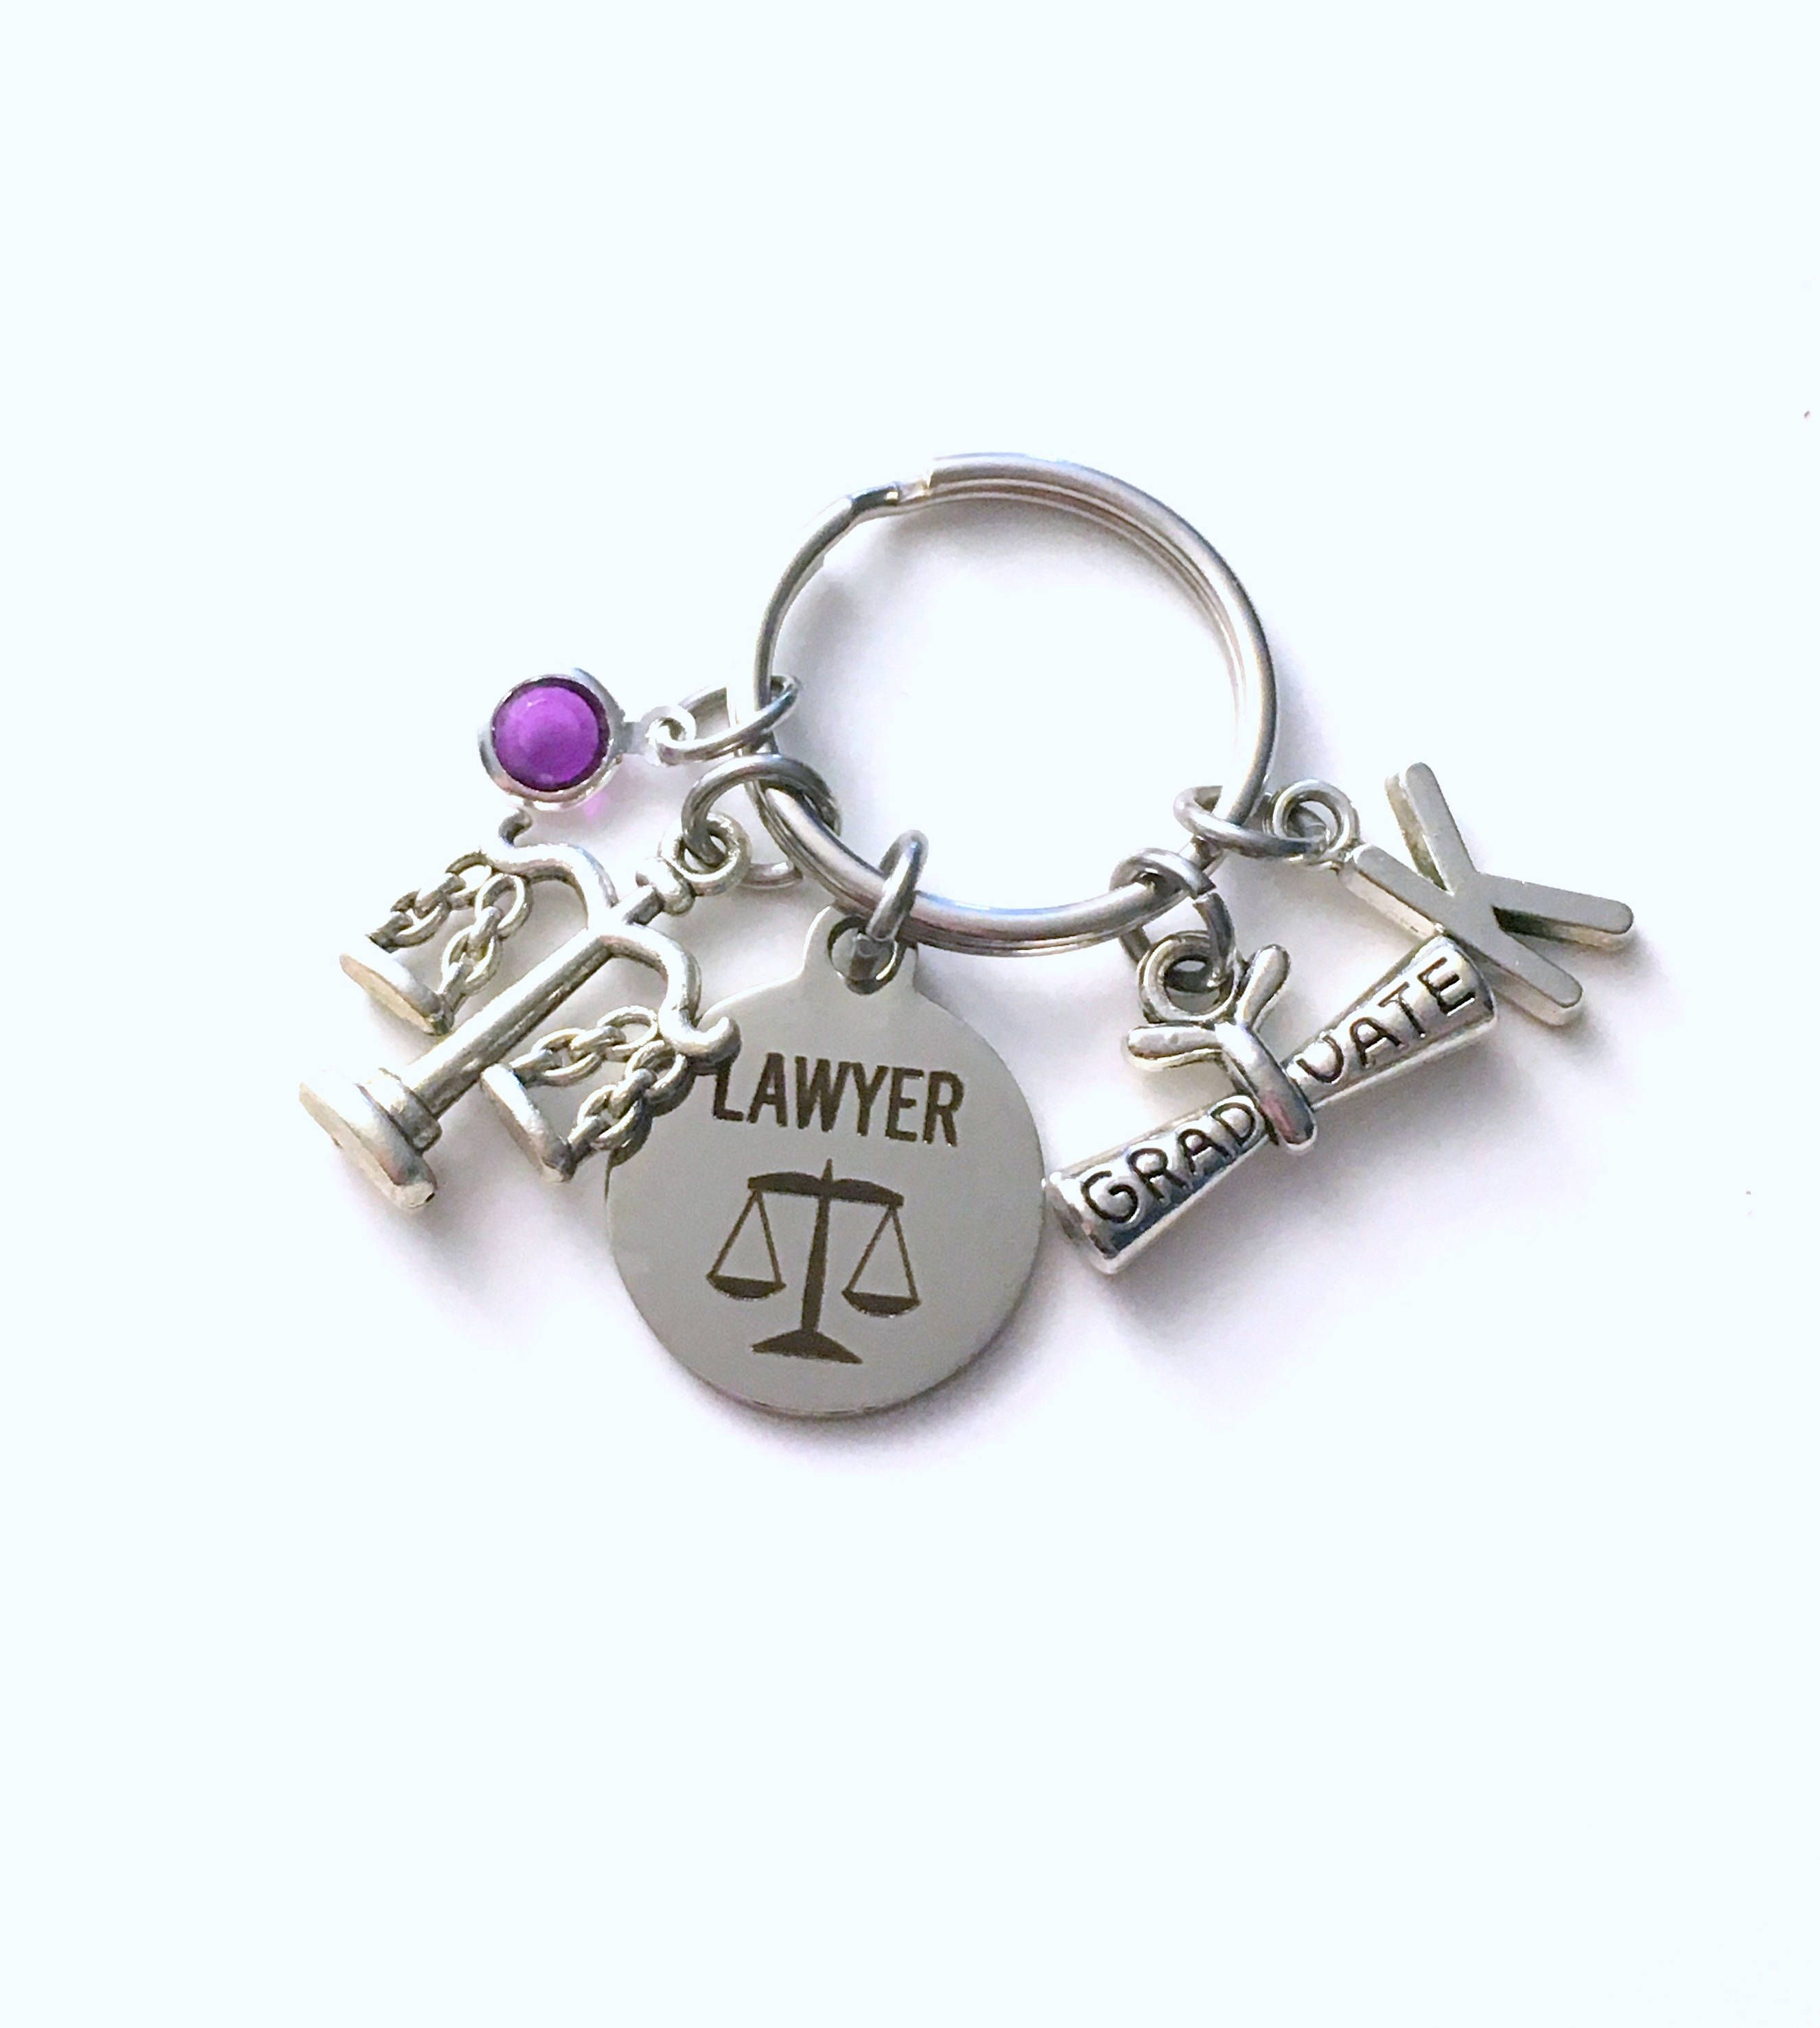 Graduation gift for lawyer keychain law student key chain